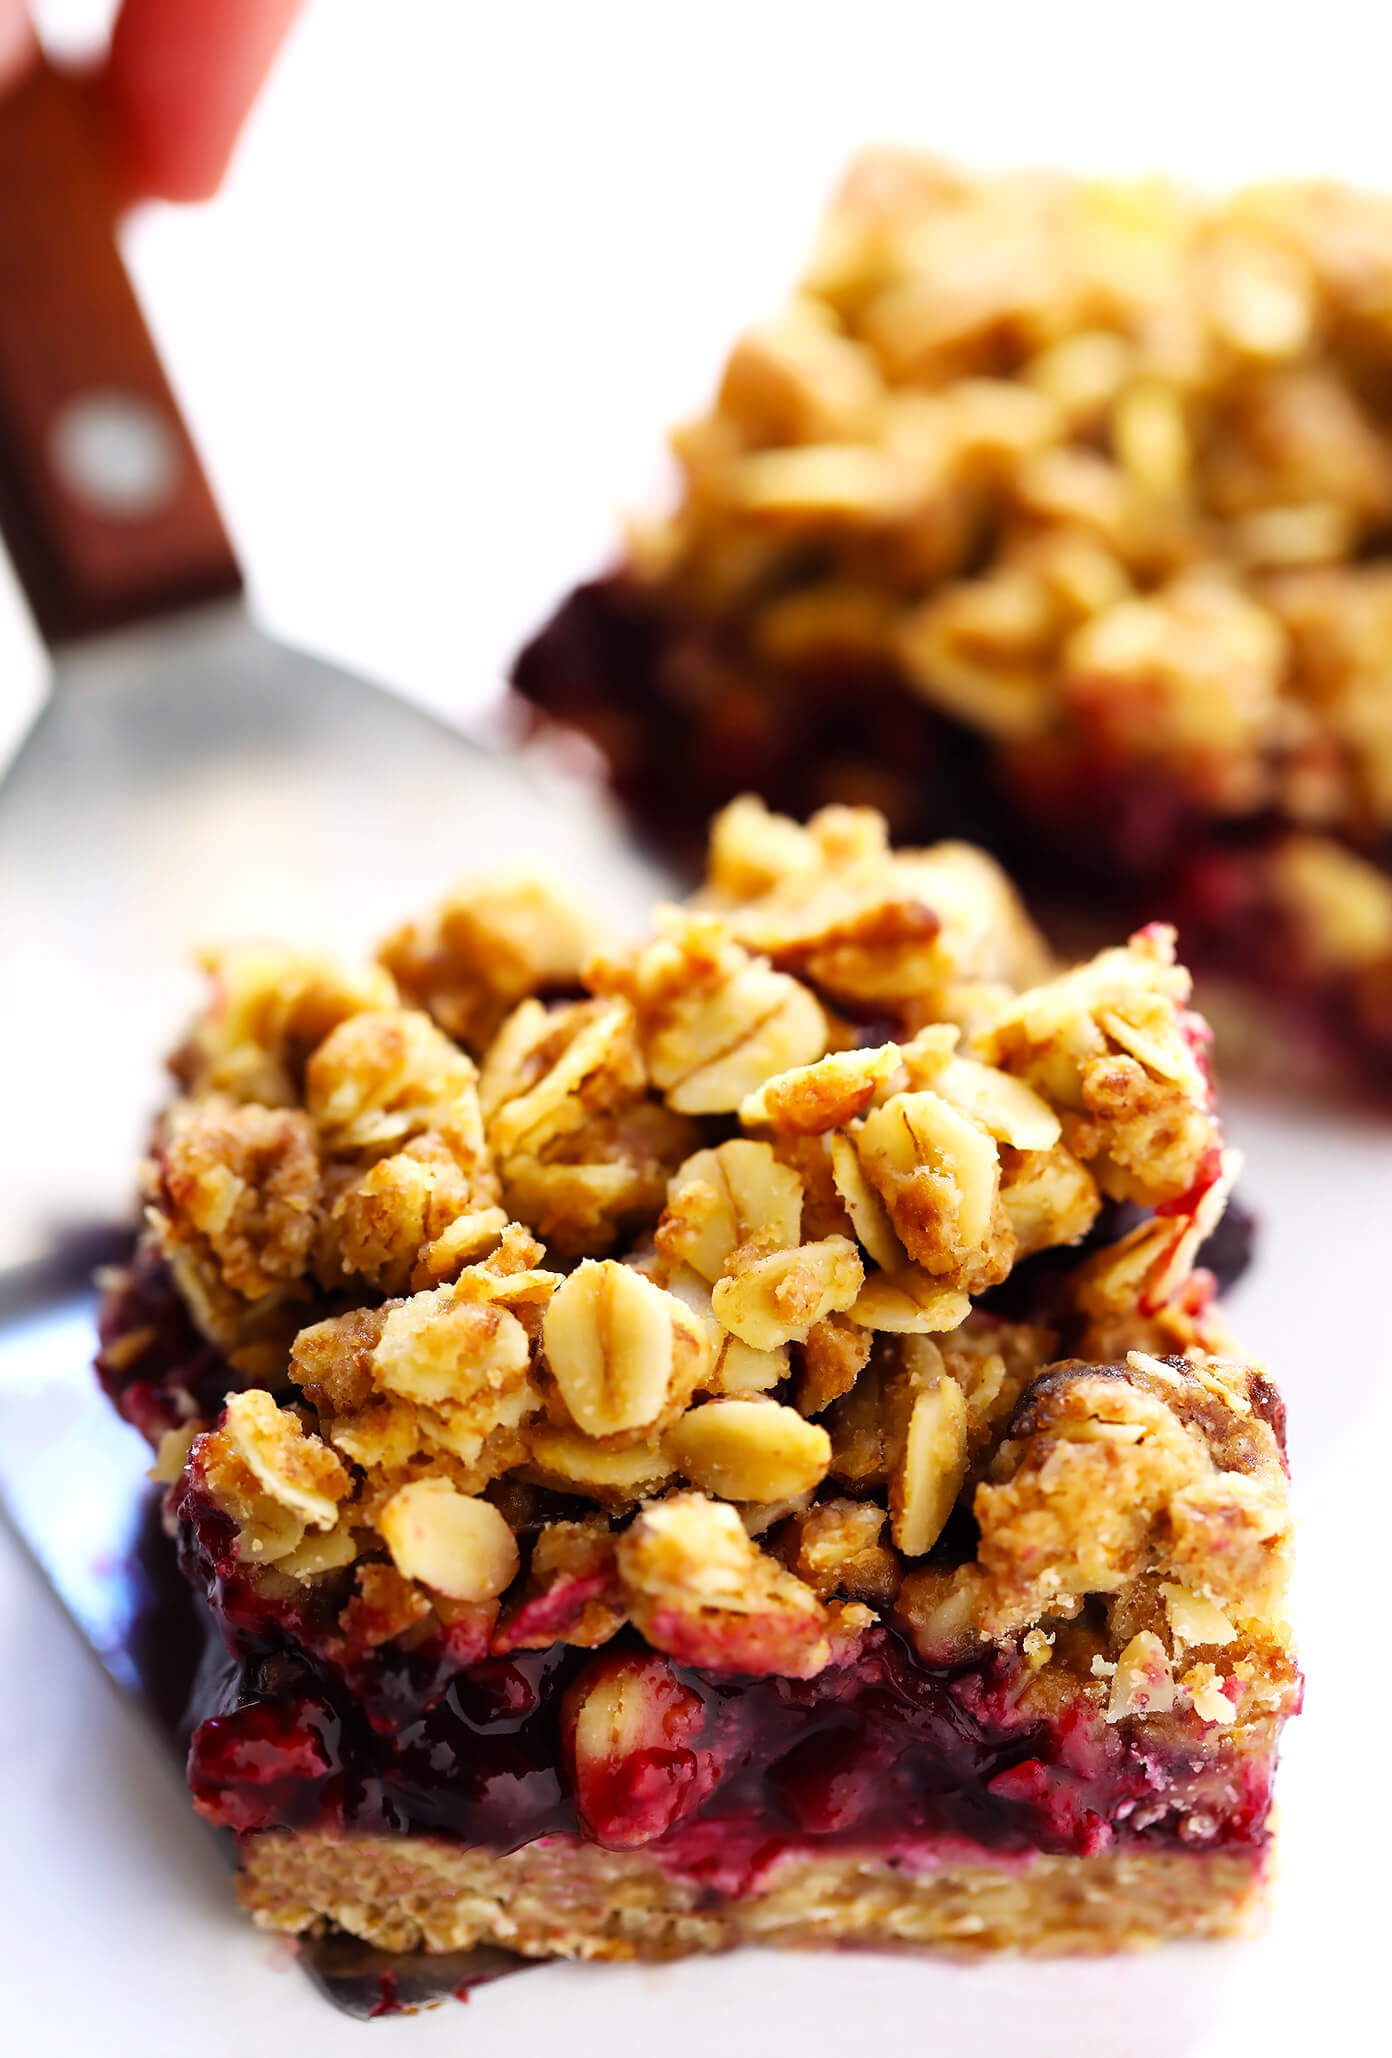 Blueberry Bars Recipe with Oatmeal Crumble